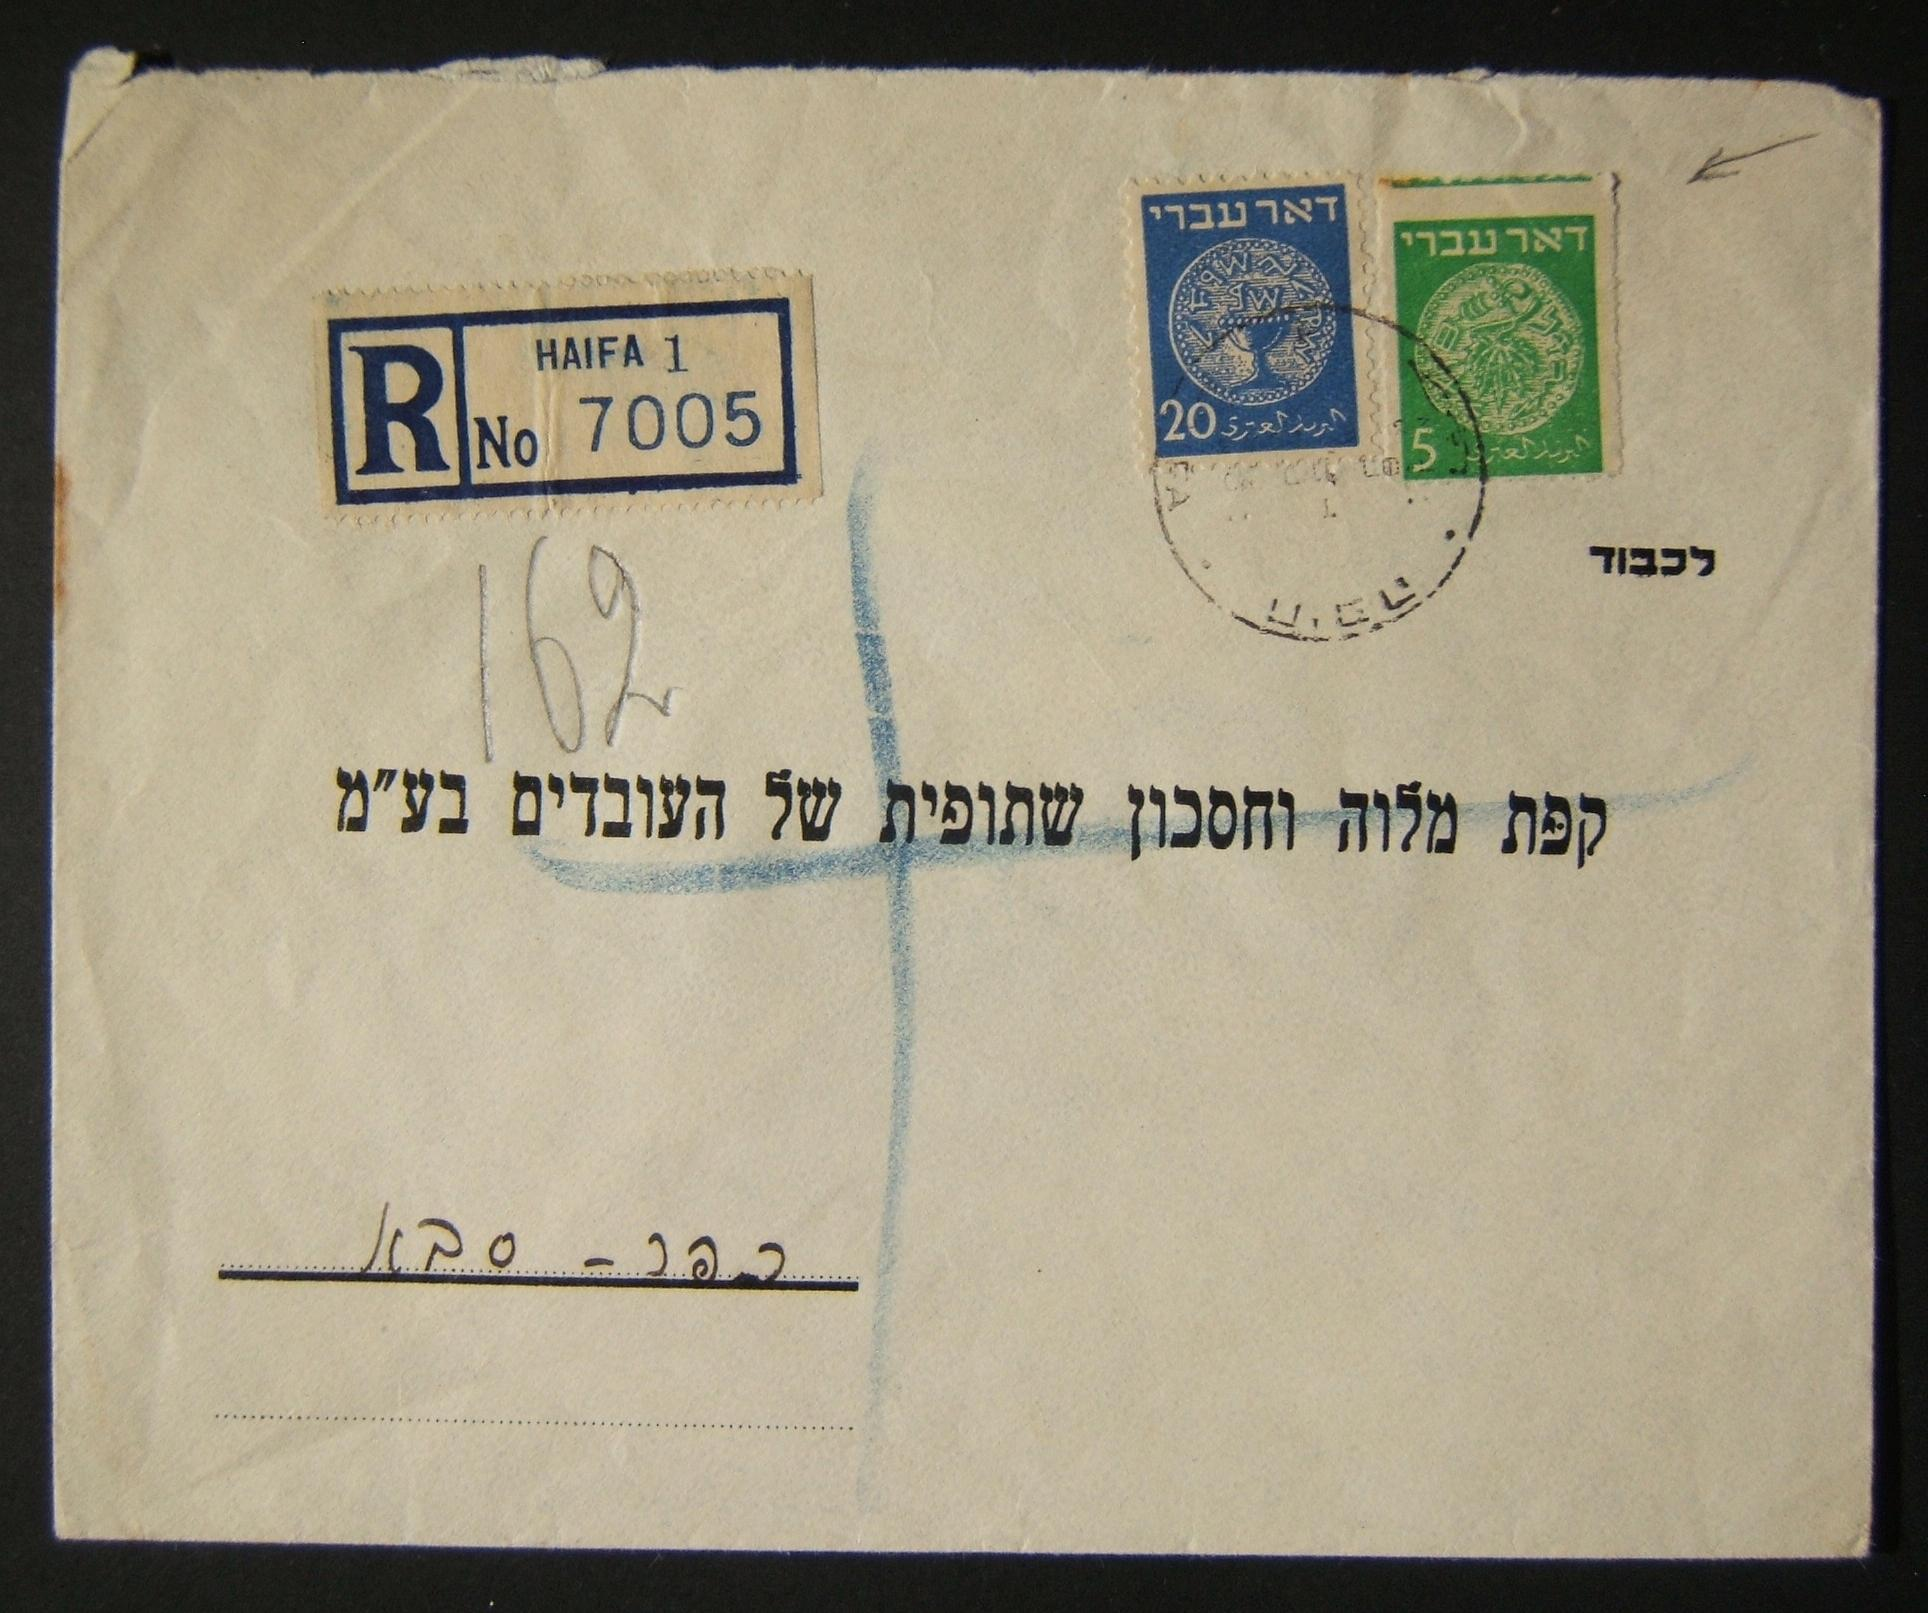 6/1948 registered mail from HAIFA to KEFAR SAVA with mis-cut stamp & Mandate postmark